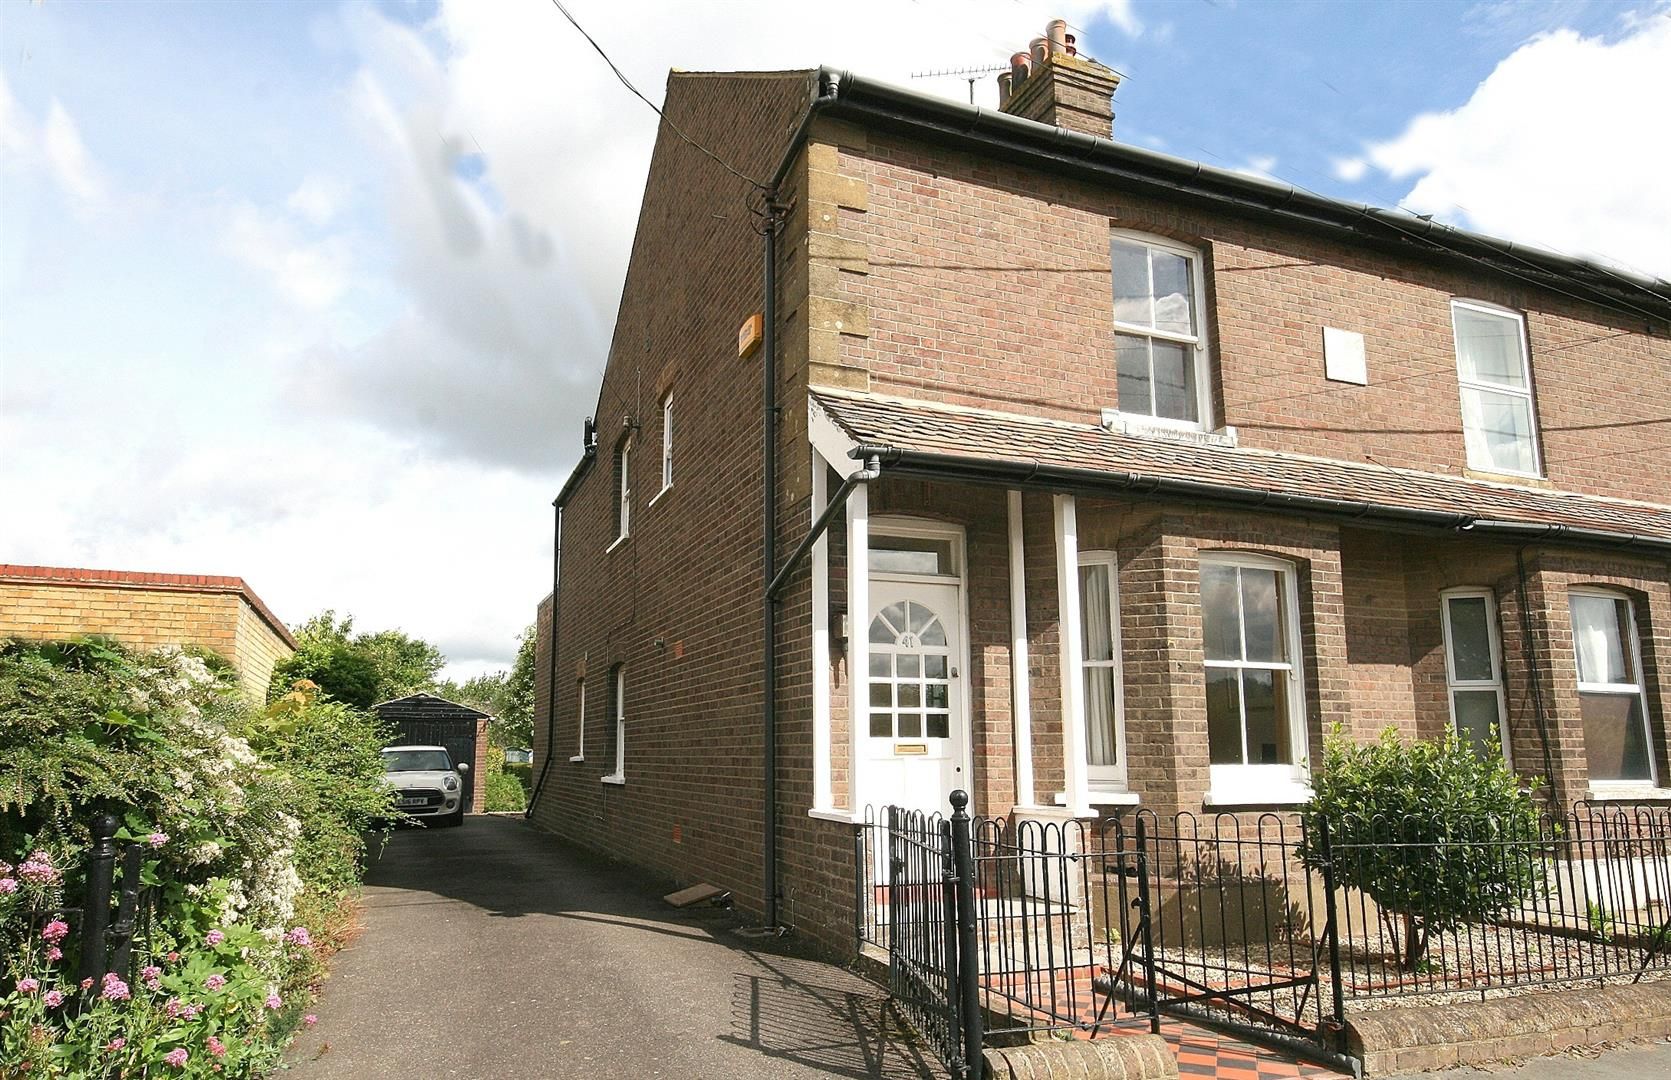 3 Bedrooms Semi Detached House for sale in Marsworth Road, Pitstone, Bucks.